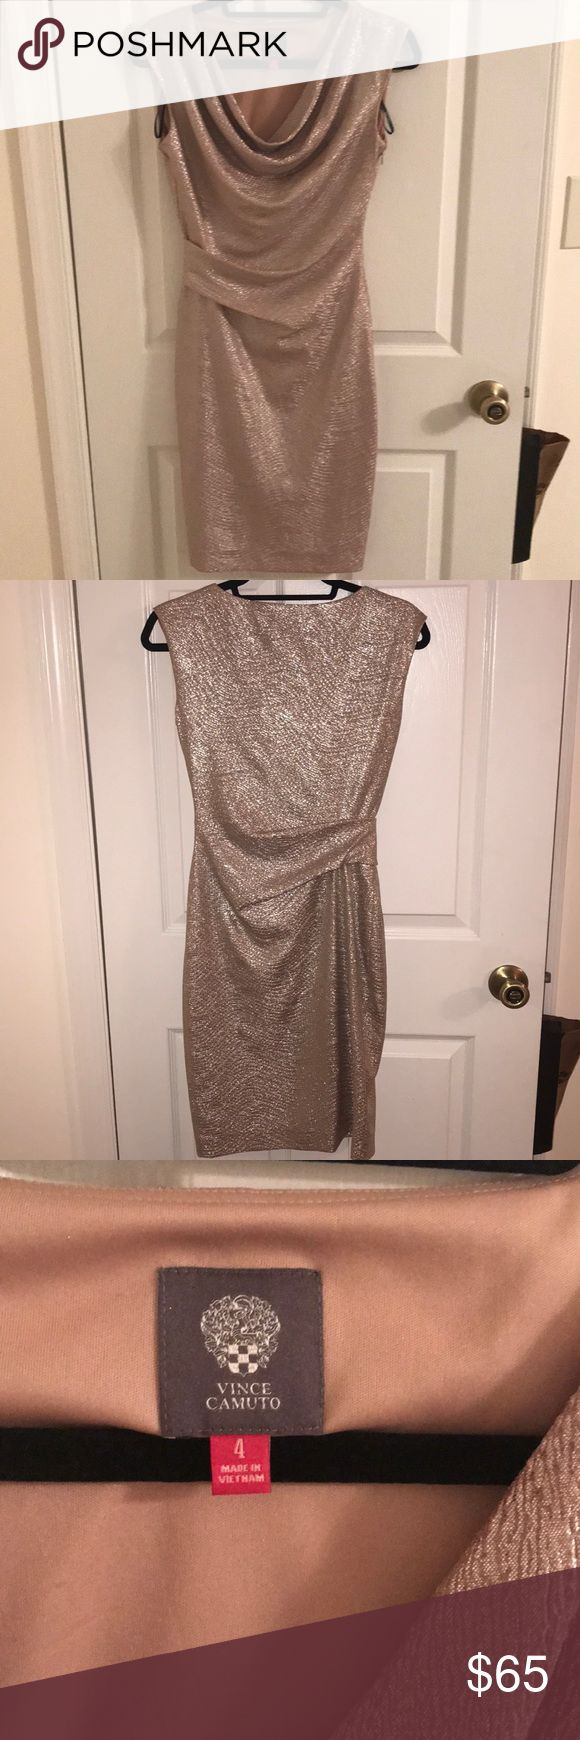 Vince Camuto silver dress in size 4 Silver Vince Camuto dress in size 4. Perfect cocktail dress or wedding guest dress. Flattering ruching design. Smoke free, Pet Free home. Feel free to make an offer. Vince Camuto Dresses